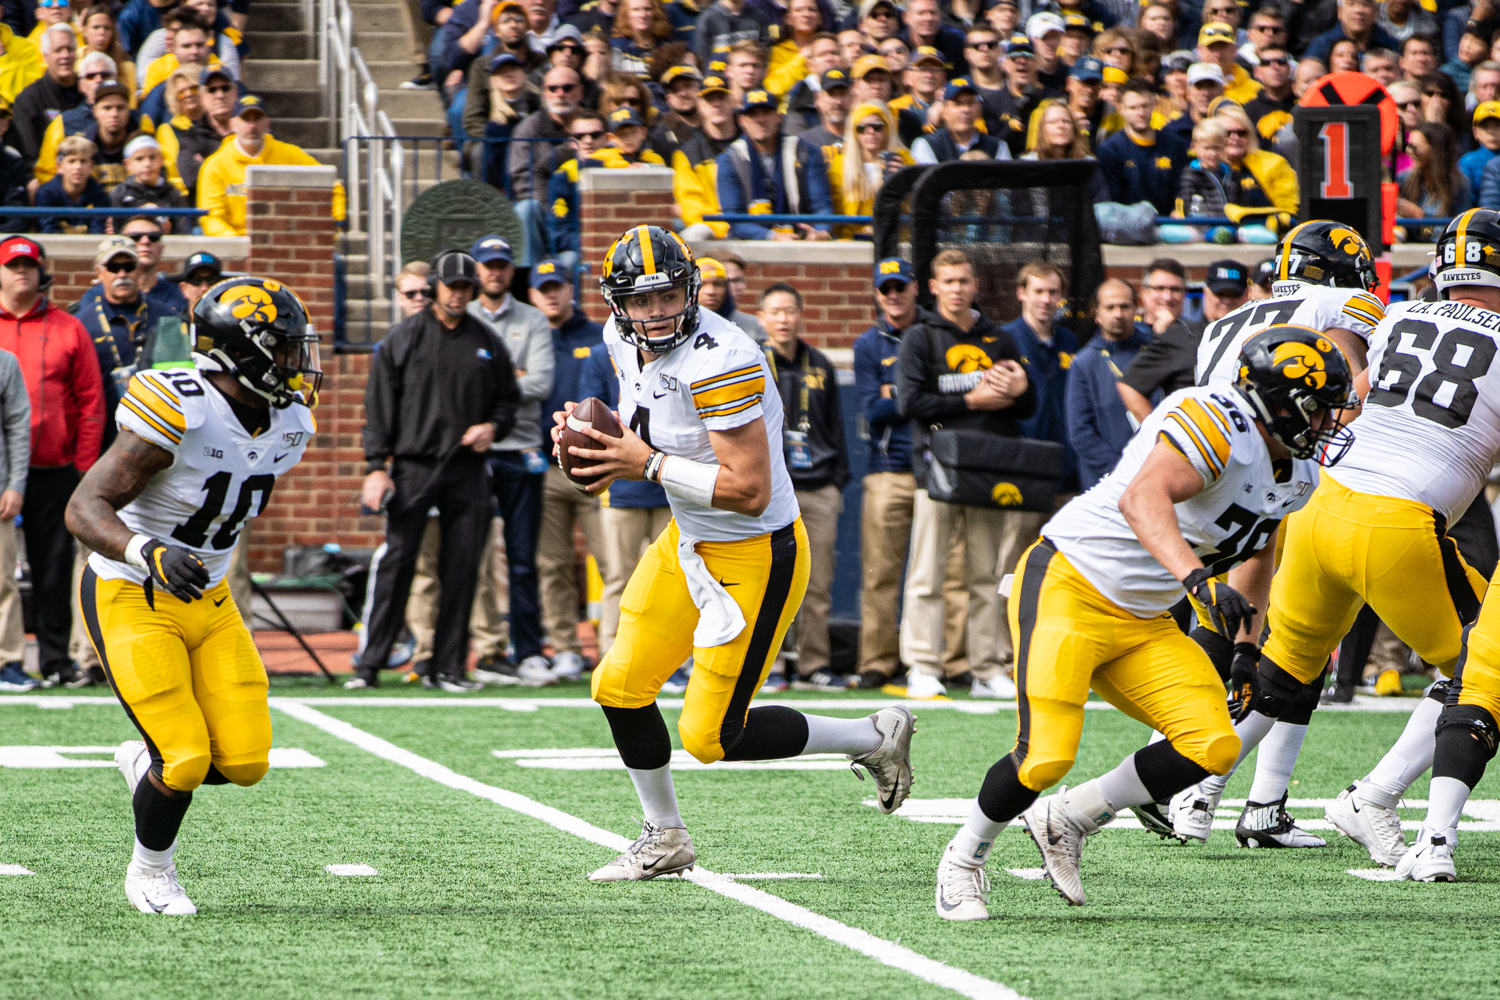 Iowa quarterback Nate Stanley drops back during a football game between Iowa and Michigan in Ann Arbor on Saturday, October 5, 2019.